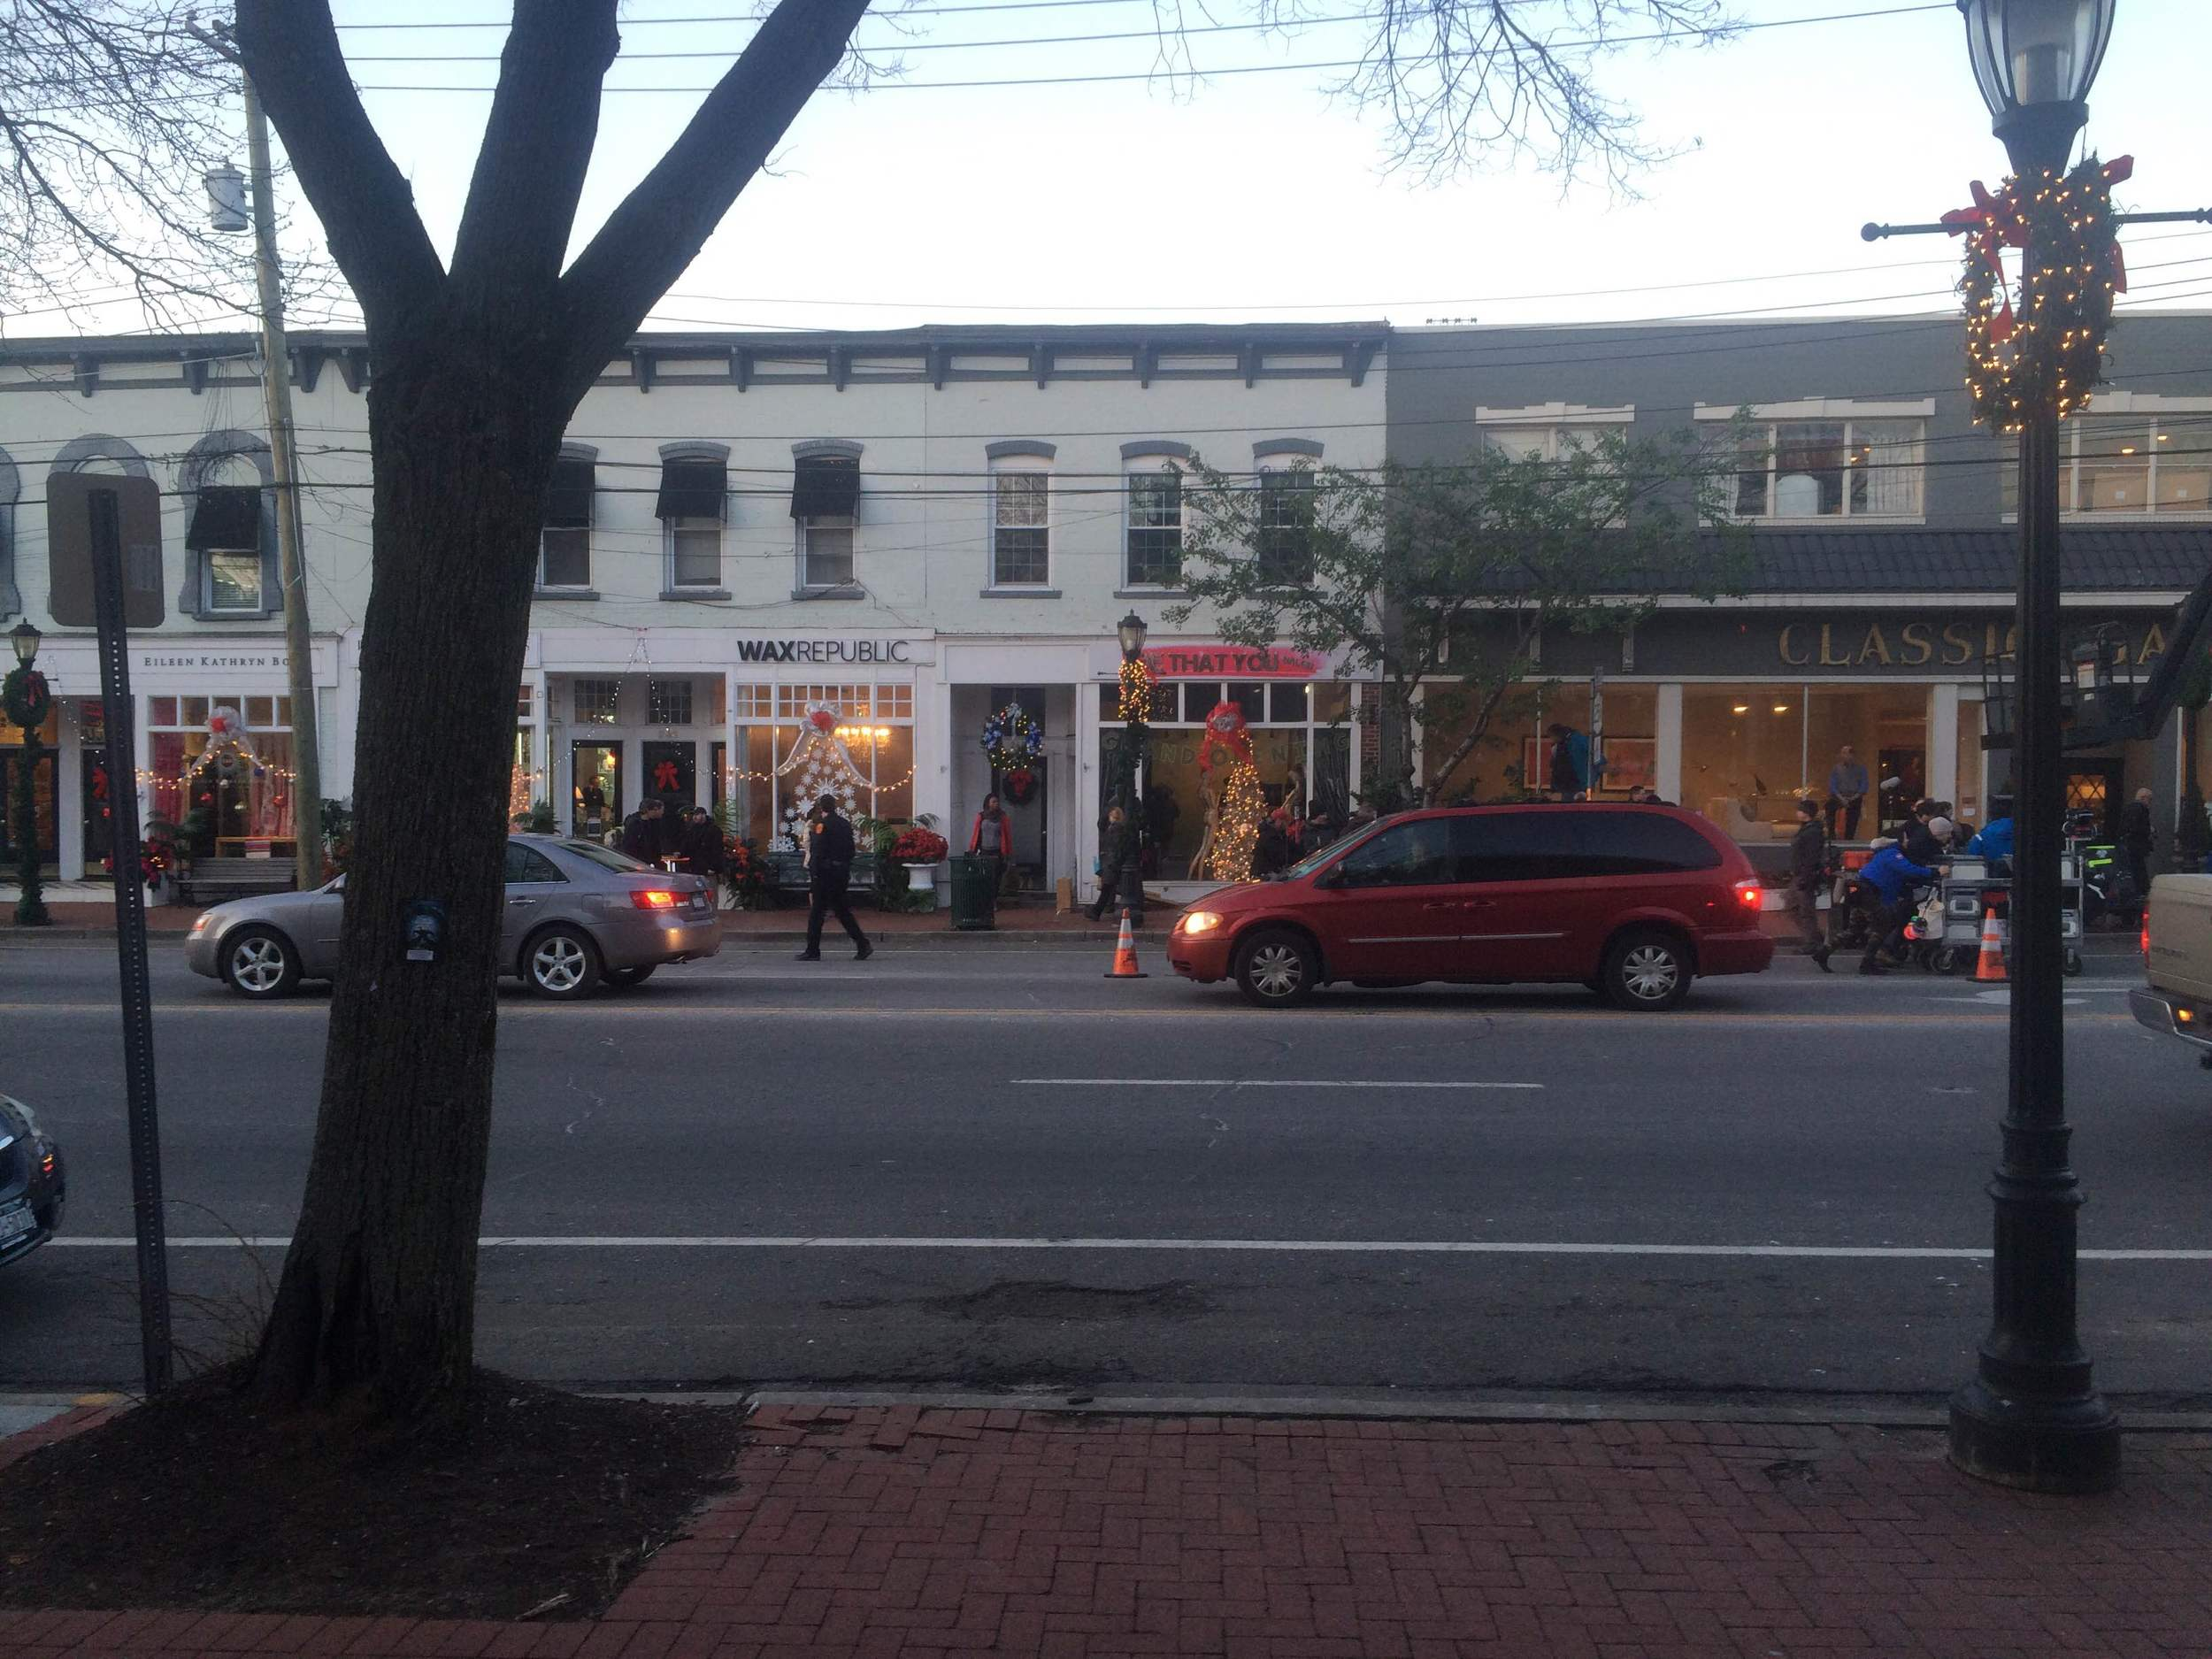 The view from across Main Street on the day of filming.